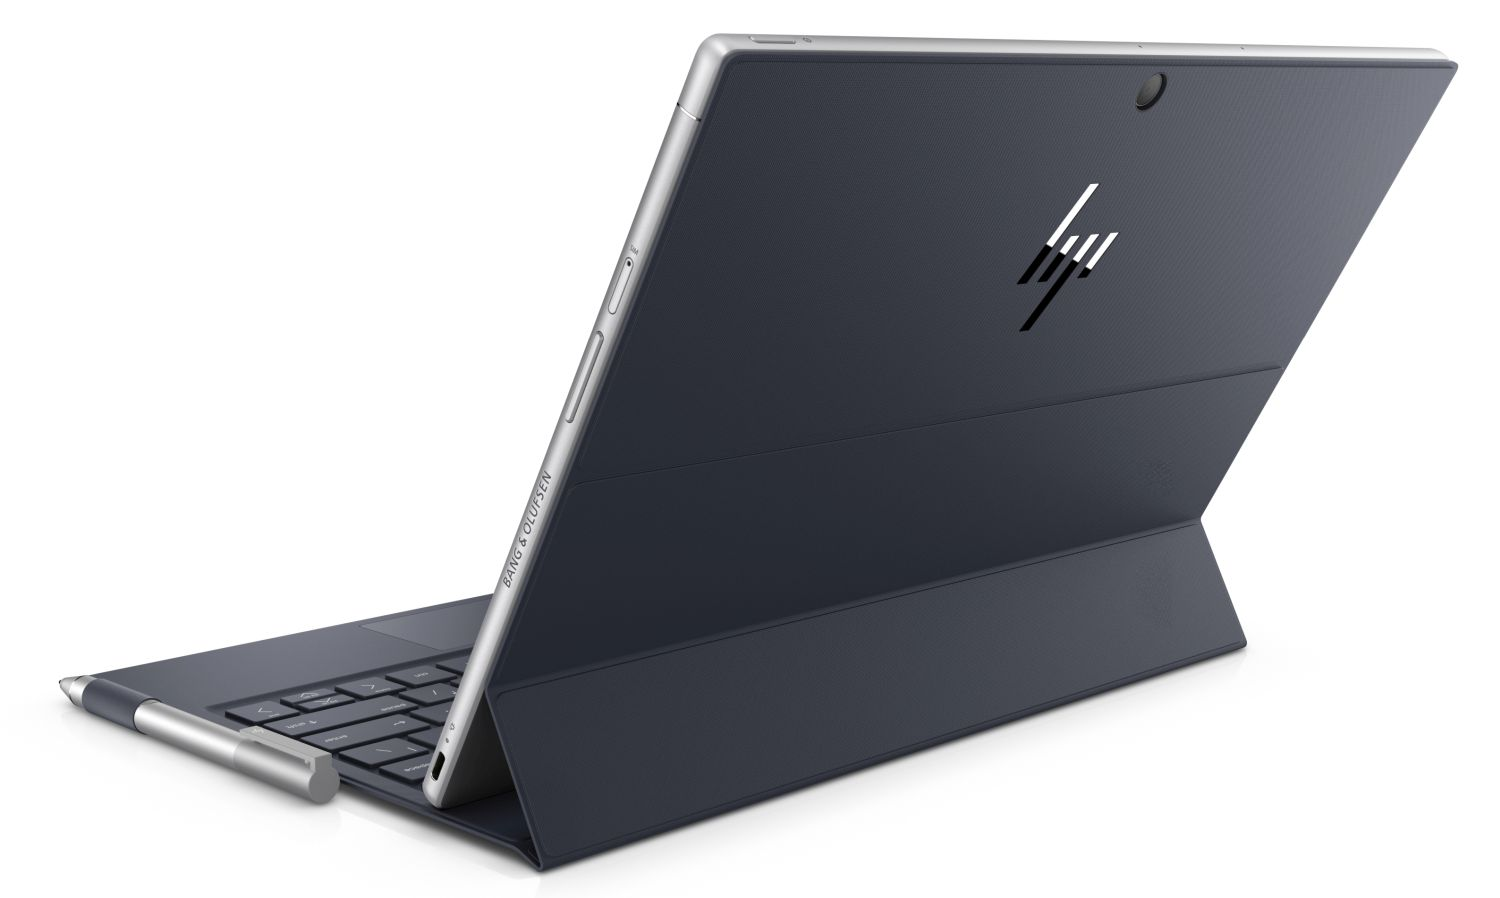 HP And Bang Olufsen Launch Gaming Notebook Omen 1433406728 besides Hp Elitebook X360 besides Hp Elite X2 1012 Price 43303 additionally Asus N750JK T4042H Notebook Review 119975 0 furthermore Overview. on bang olufsen keyboard